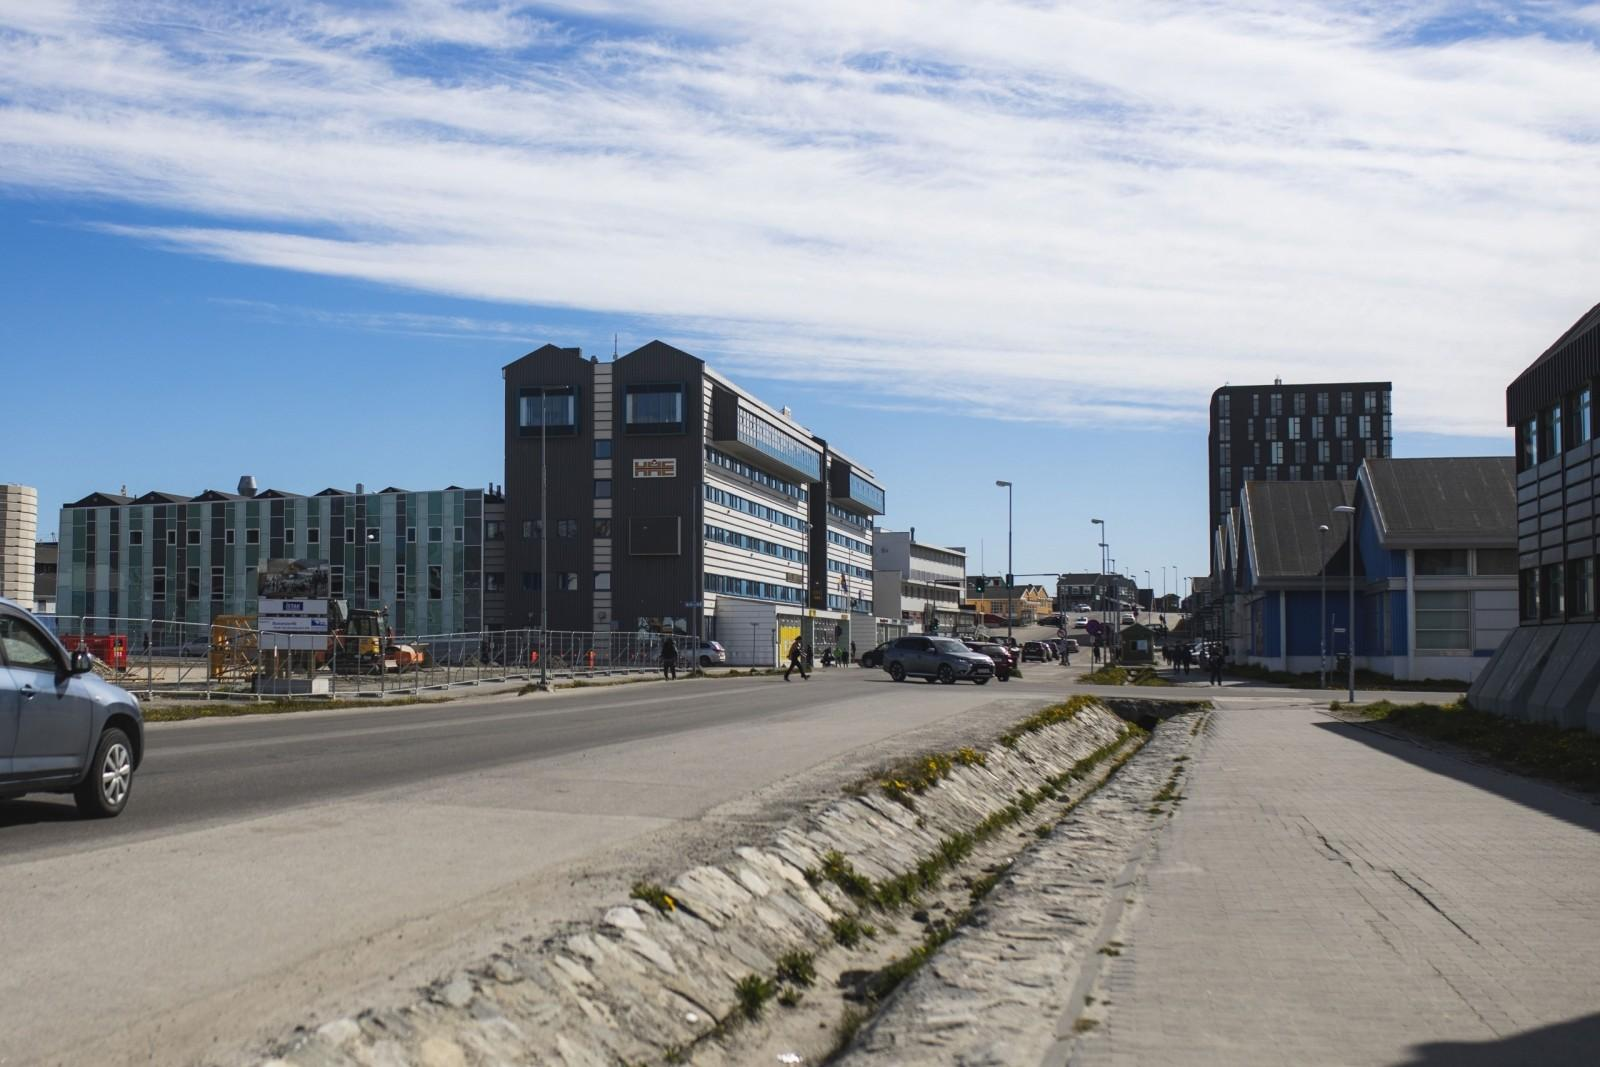 After-The main road of Nuuk towards Hotel Hans Egede